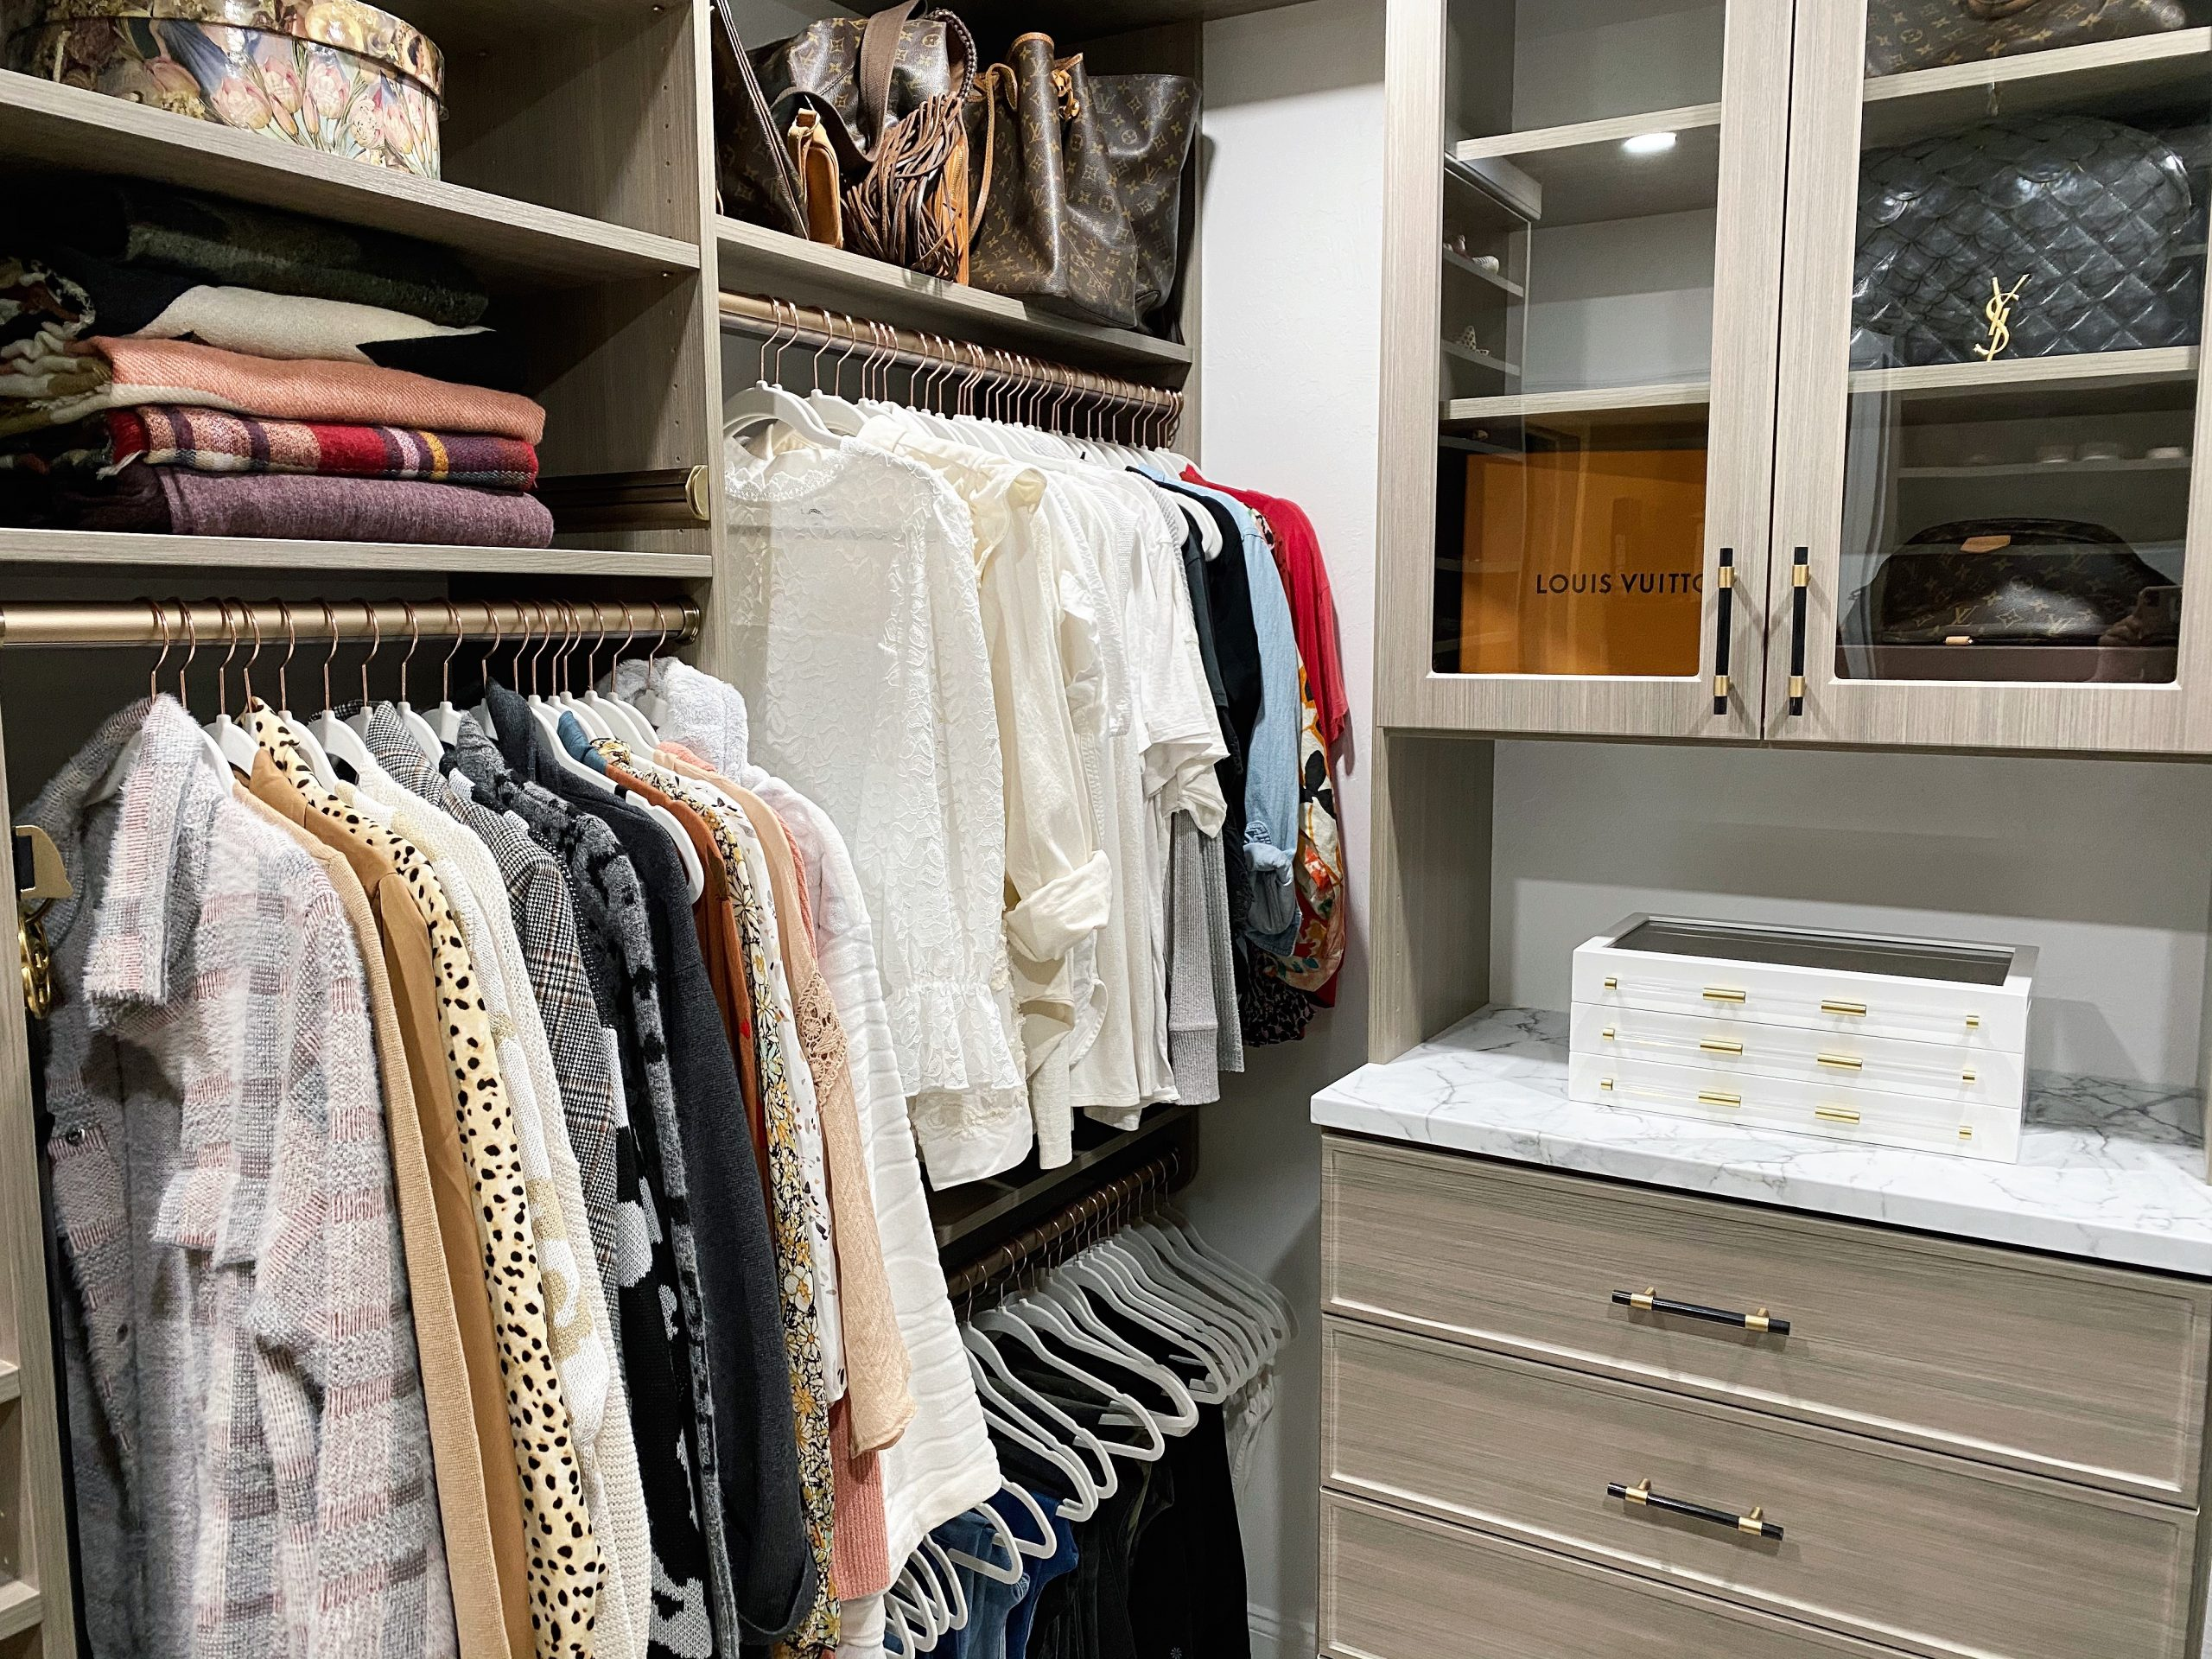 Sandi's Closet After Banner Photo